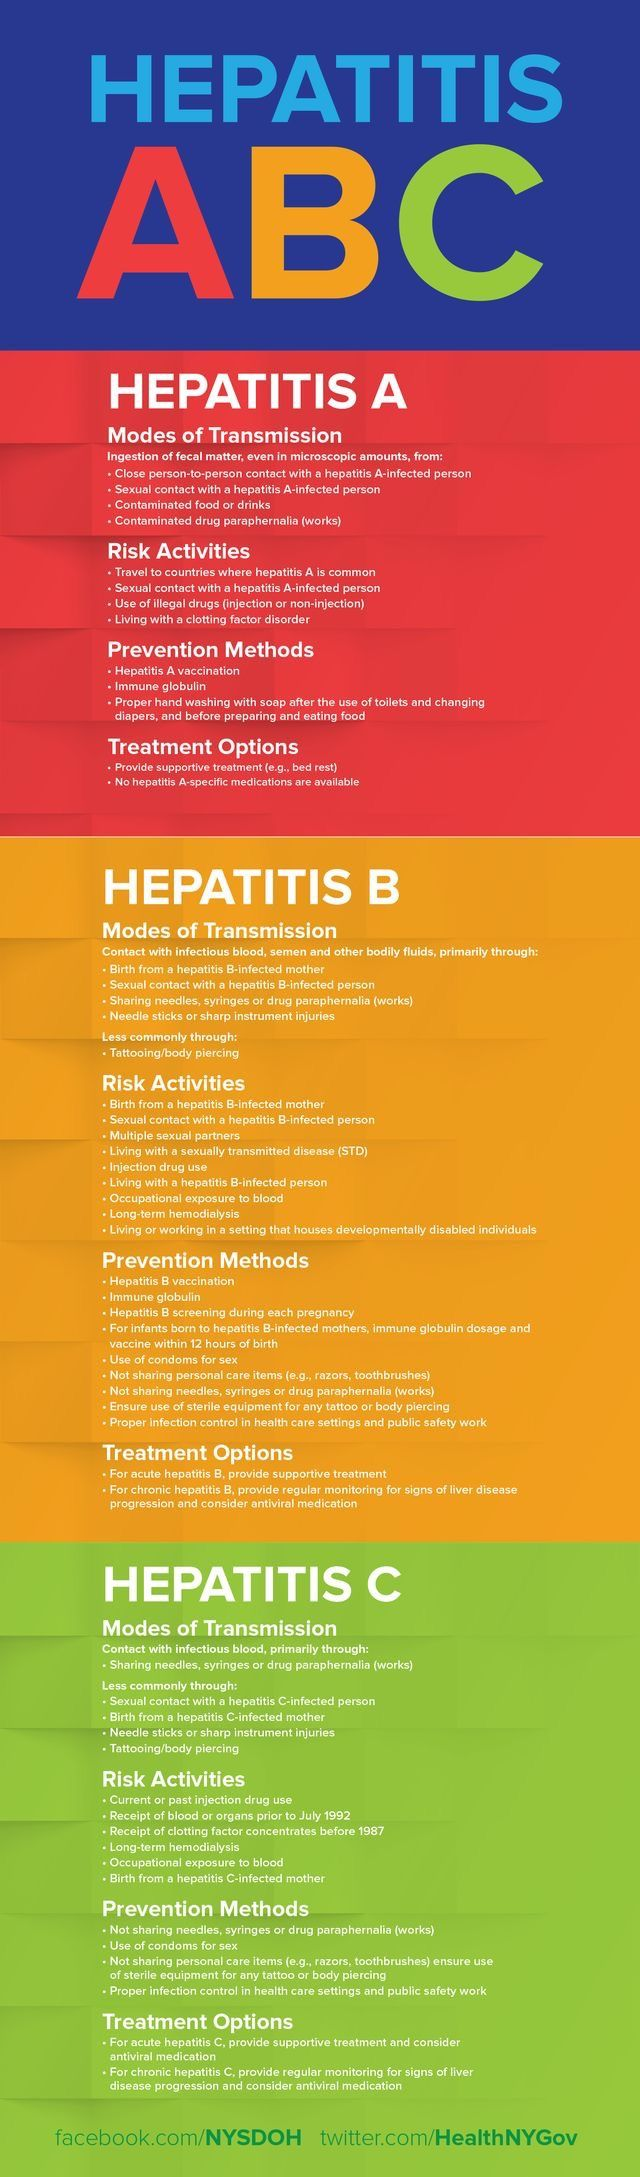 Hepatitis A, B, C